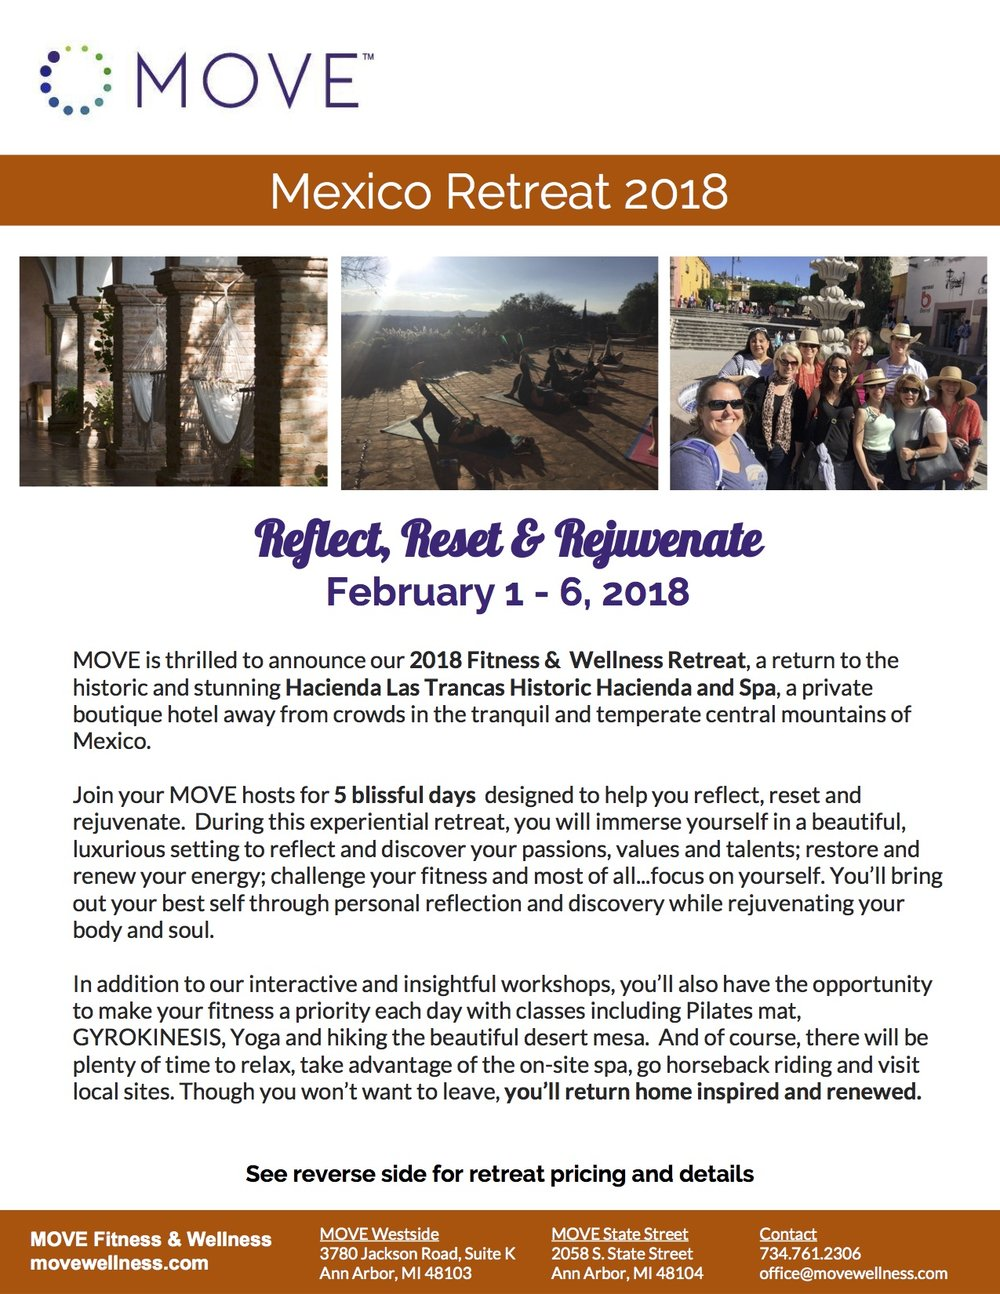 Mexico Retreat 2018 — Samantha Hart